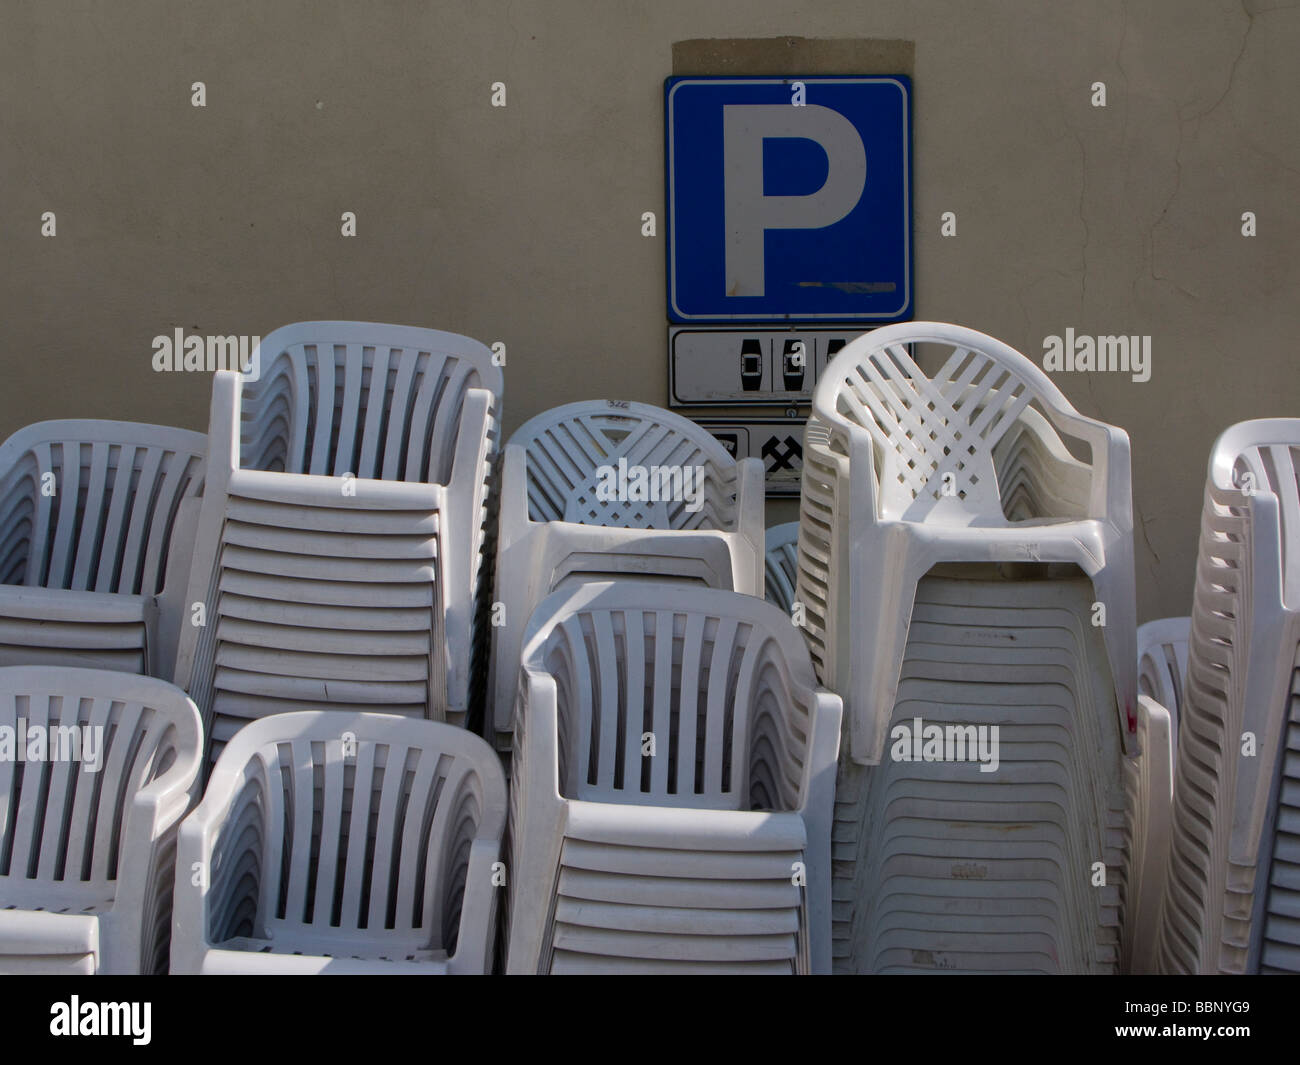 Stacked plastic chairs beneath parking sign - Stock Image